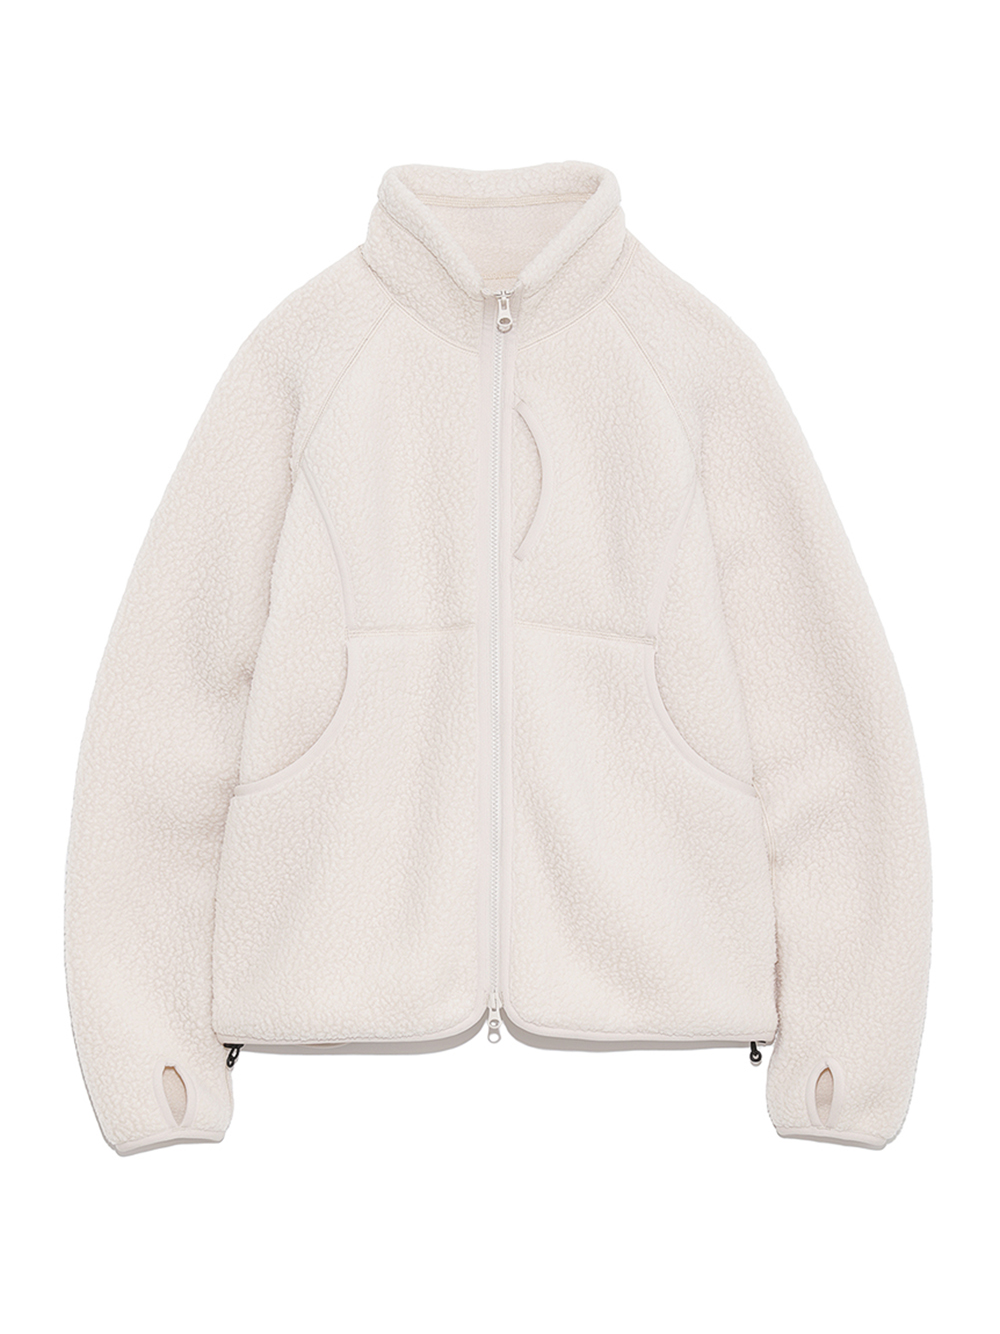 【emmi×Snow Peak】Thermal Boa Fleece Jacket